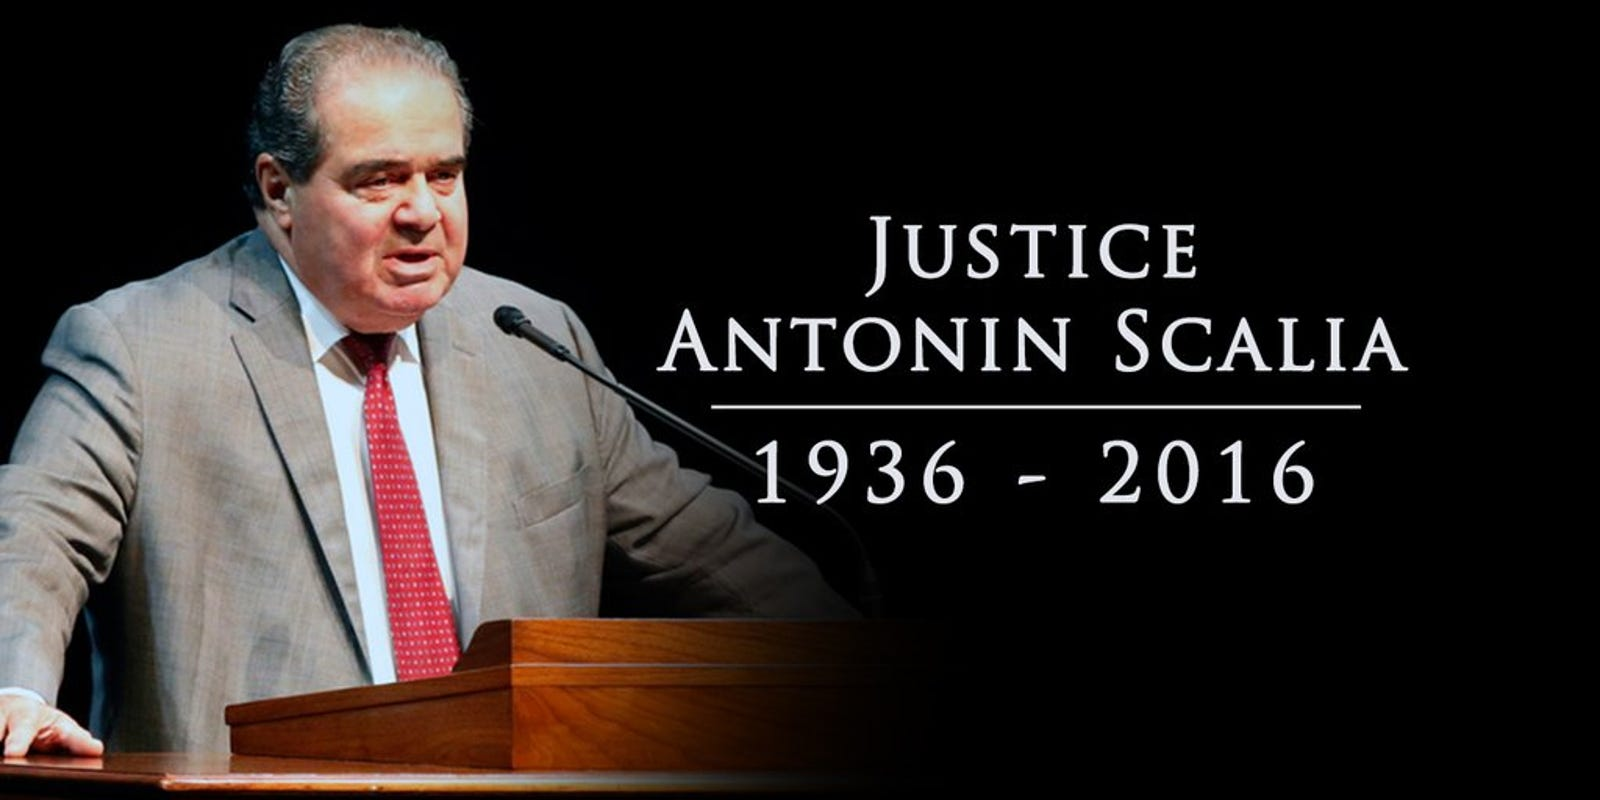 a biography of supreme court justice antonin scalia Antonin scalia, self: unprecedented: the 2000 presidential election antonin scalia was born on march 11, 1936 in trenton, new jersey, usa as antonin gregory scalia he was married to maureen mccarthy he died.